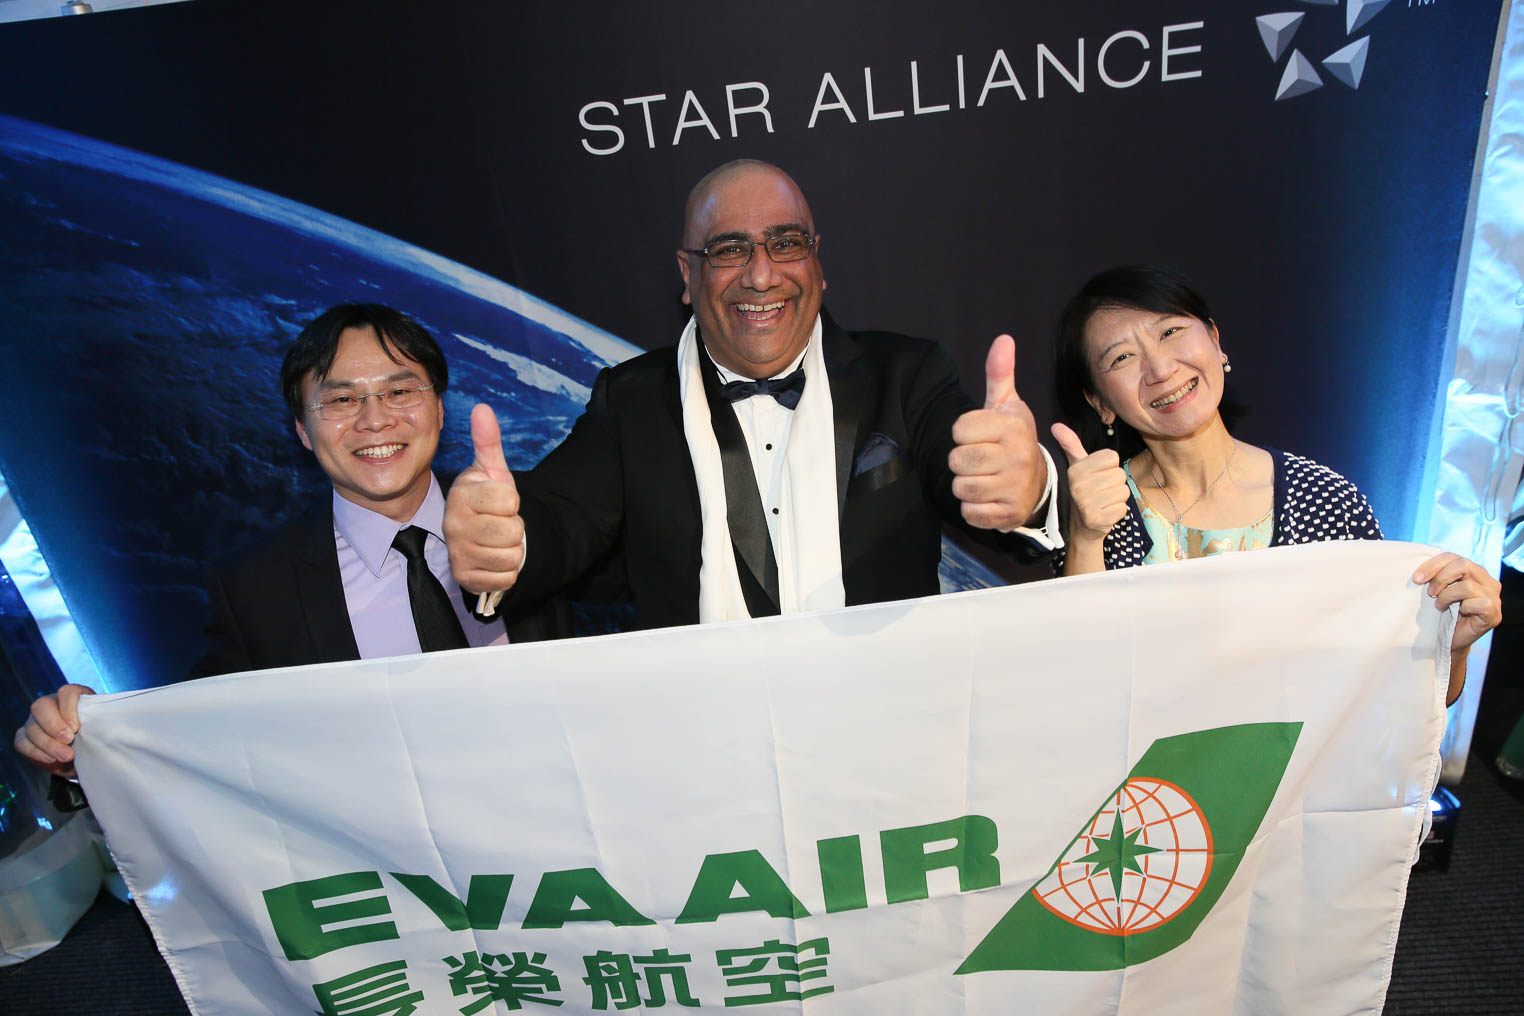 Star Alliance Scratch and Win_3_Phoenix Liu (EVA)_Walter Nand (Avalon Waterways)_Teresa Yang (EVA)